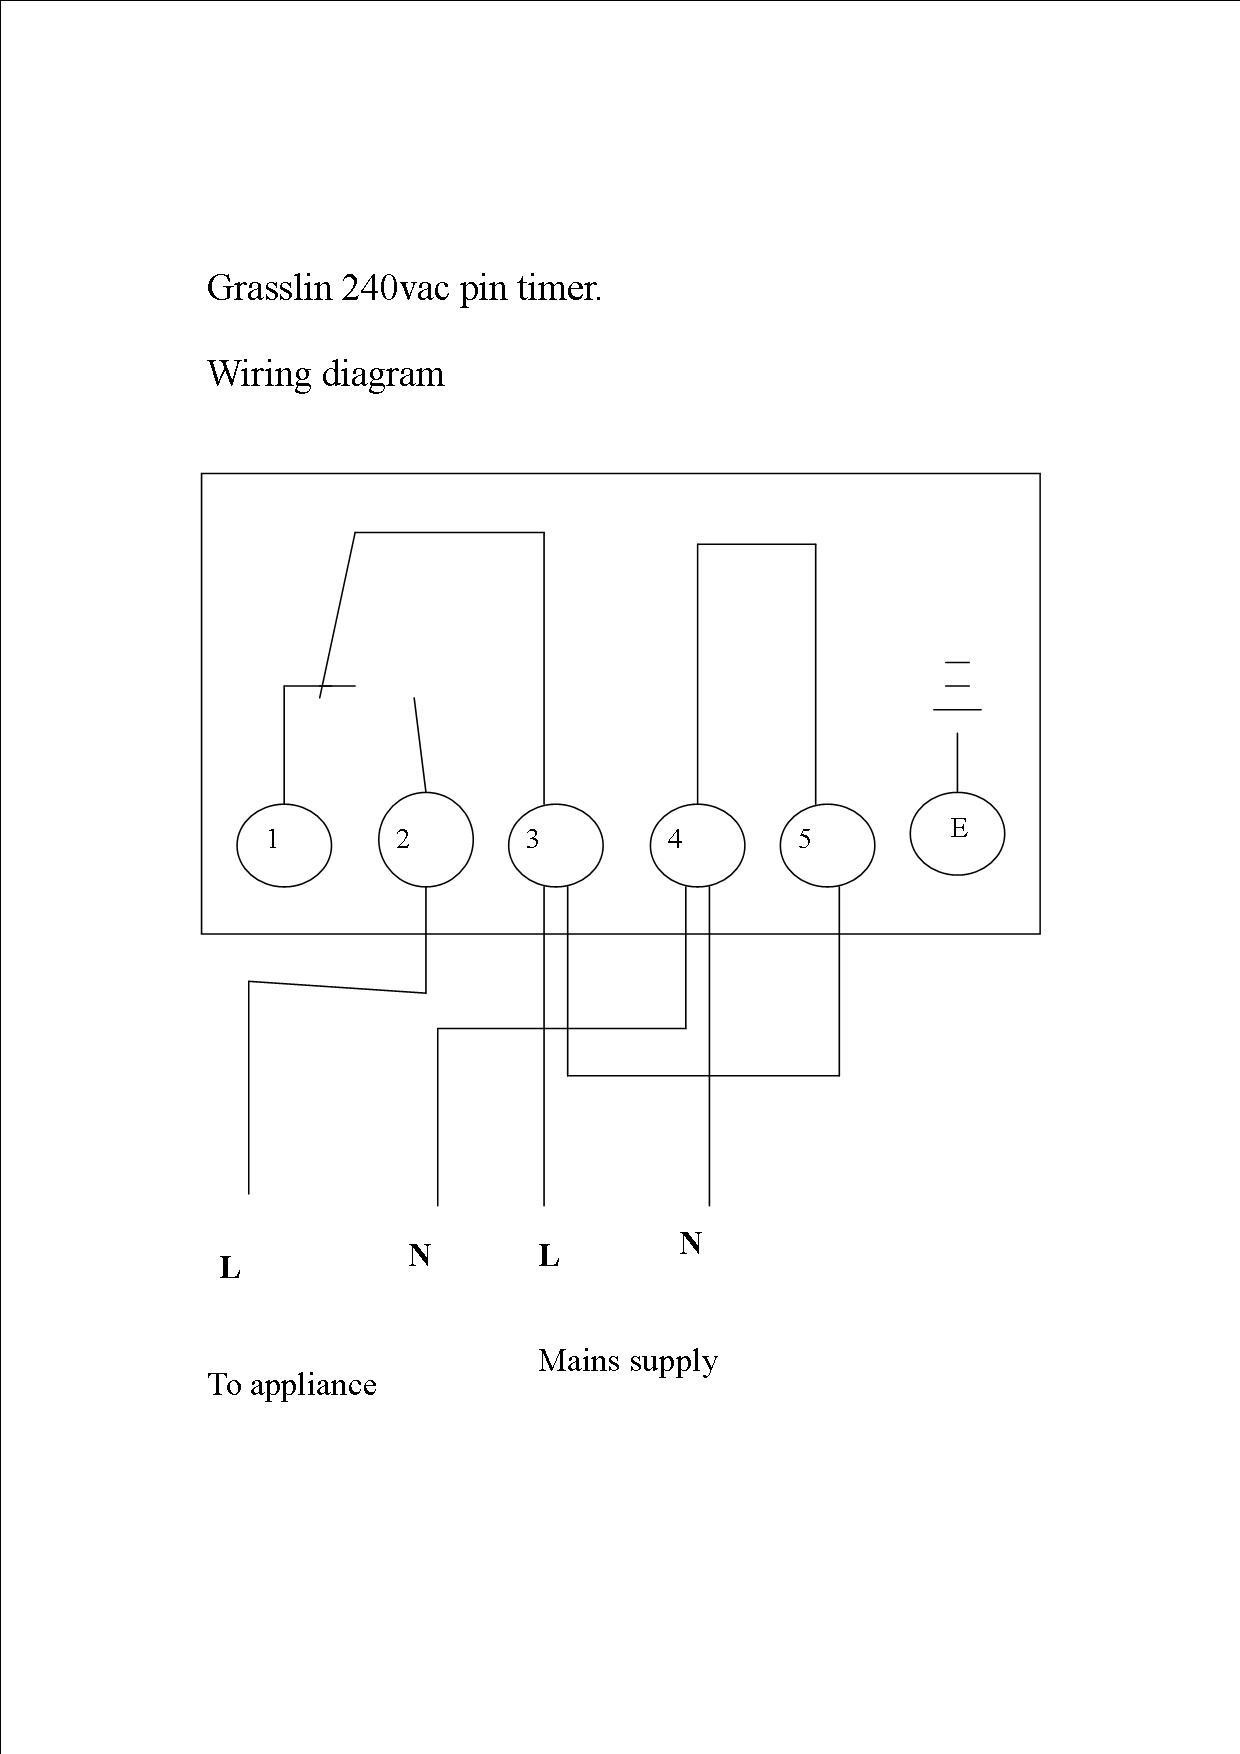 Tork Wiring Schematic for Lighting Contactor and Photocell Lighting Time Clock Wiring Diagram Probleme Audi A4 Voyant Of Tork Wiring Schematic for Lighting Contactor and Photocell F62dca3 tork Lighting Contactor Wiring Diagram